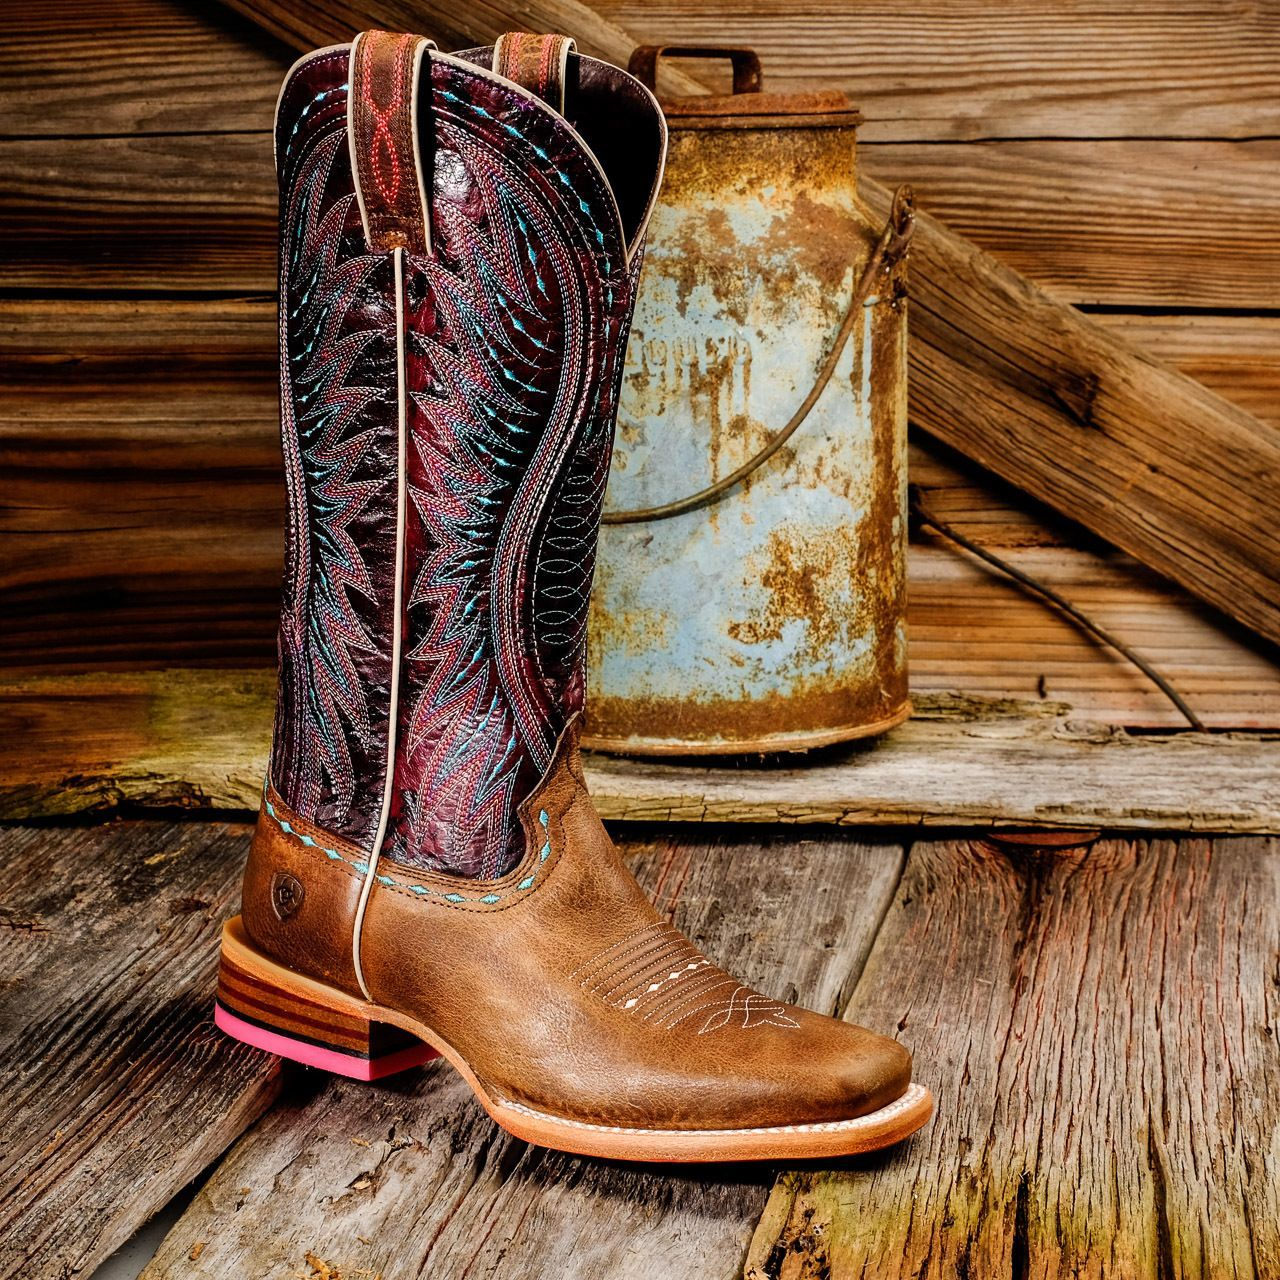 19b821e0319 Ariat Vaquera 10017363 Saddle Tan Cowgirl Boots in 2019 | Should've ...